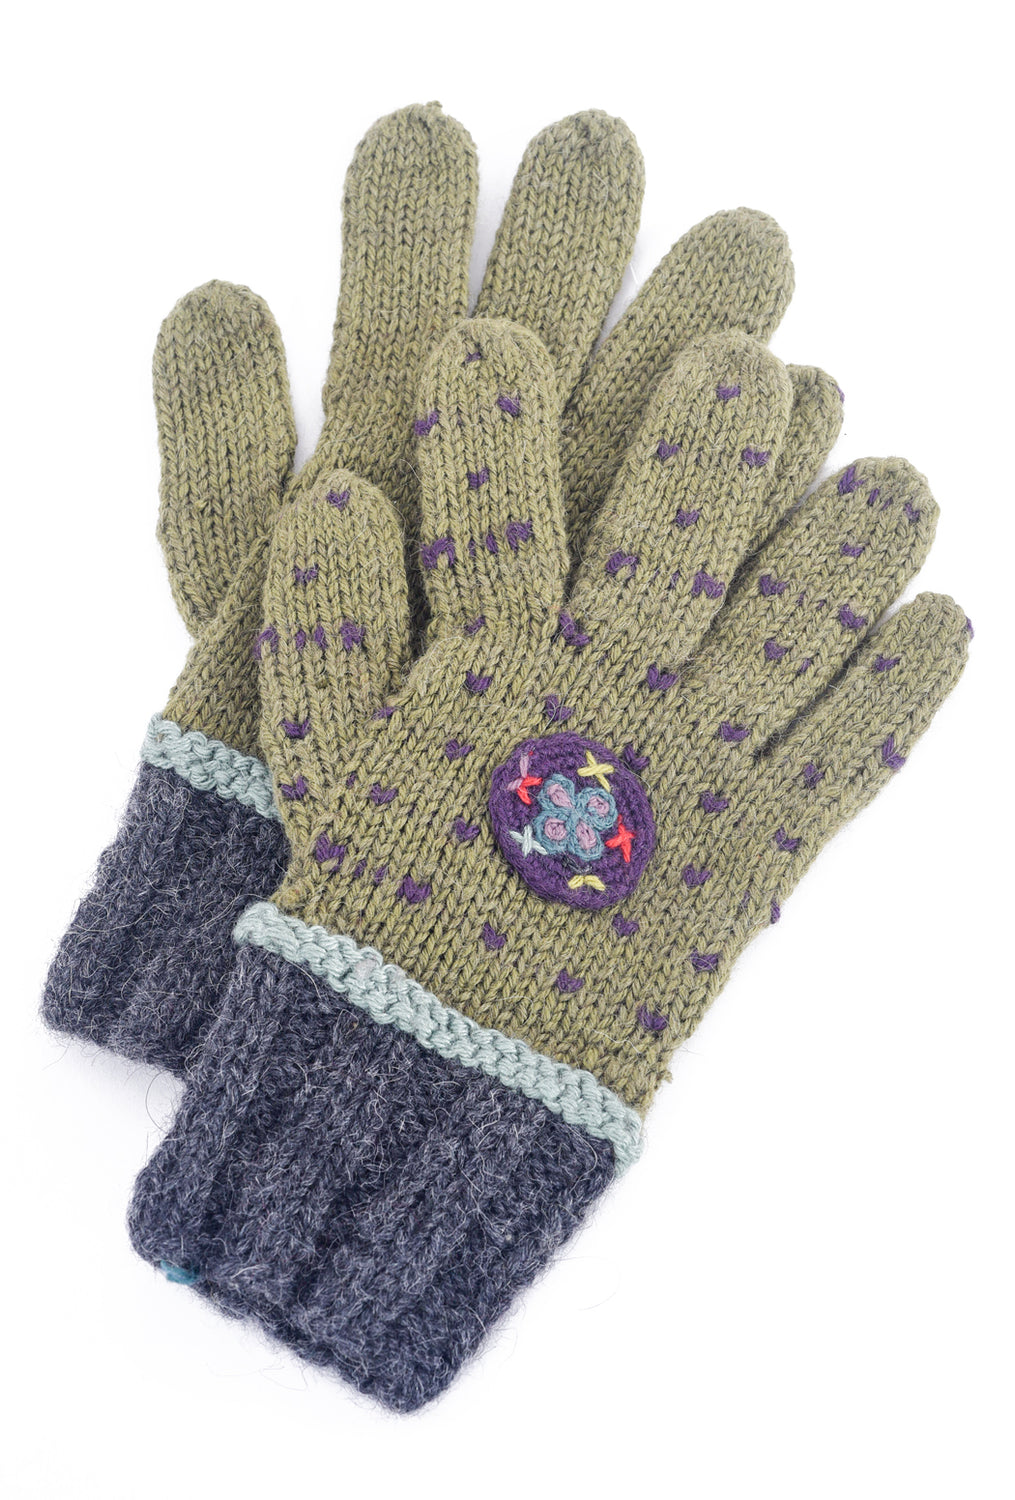 Little Journeys Little Journeys Gloves, Seurat Green One Size Green